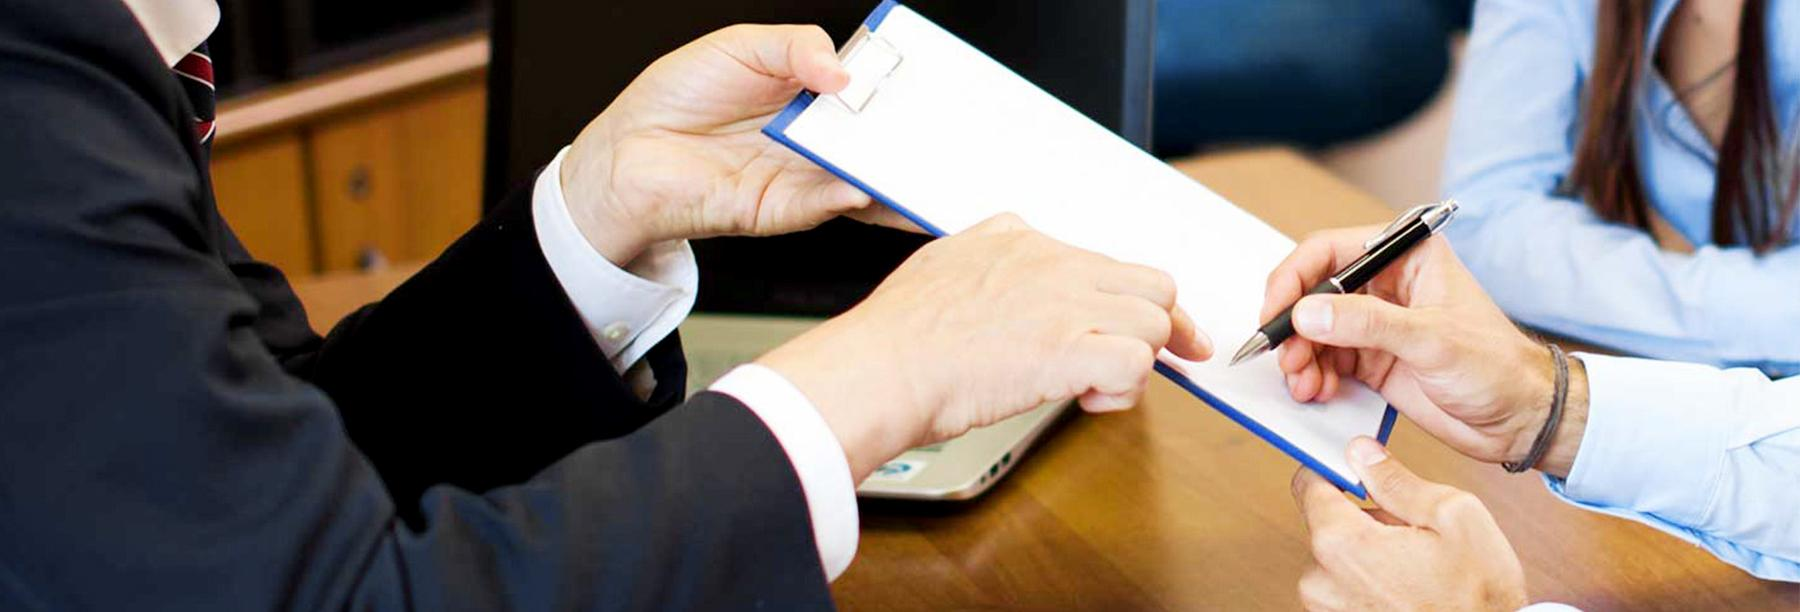 share-analyst-information.jpg